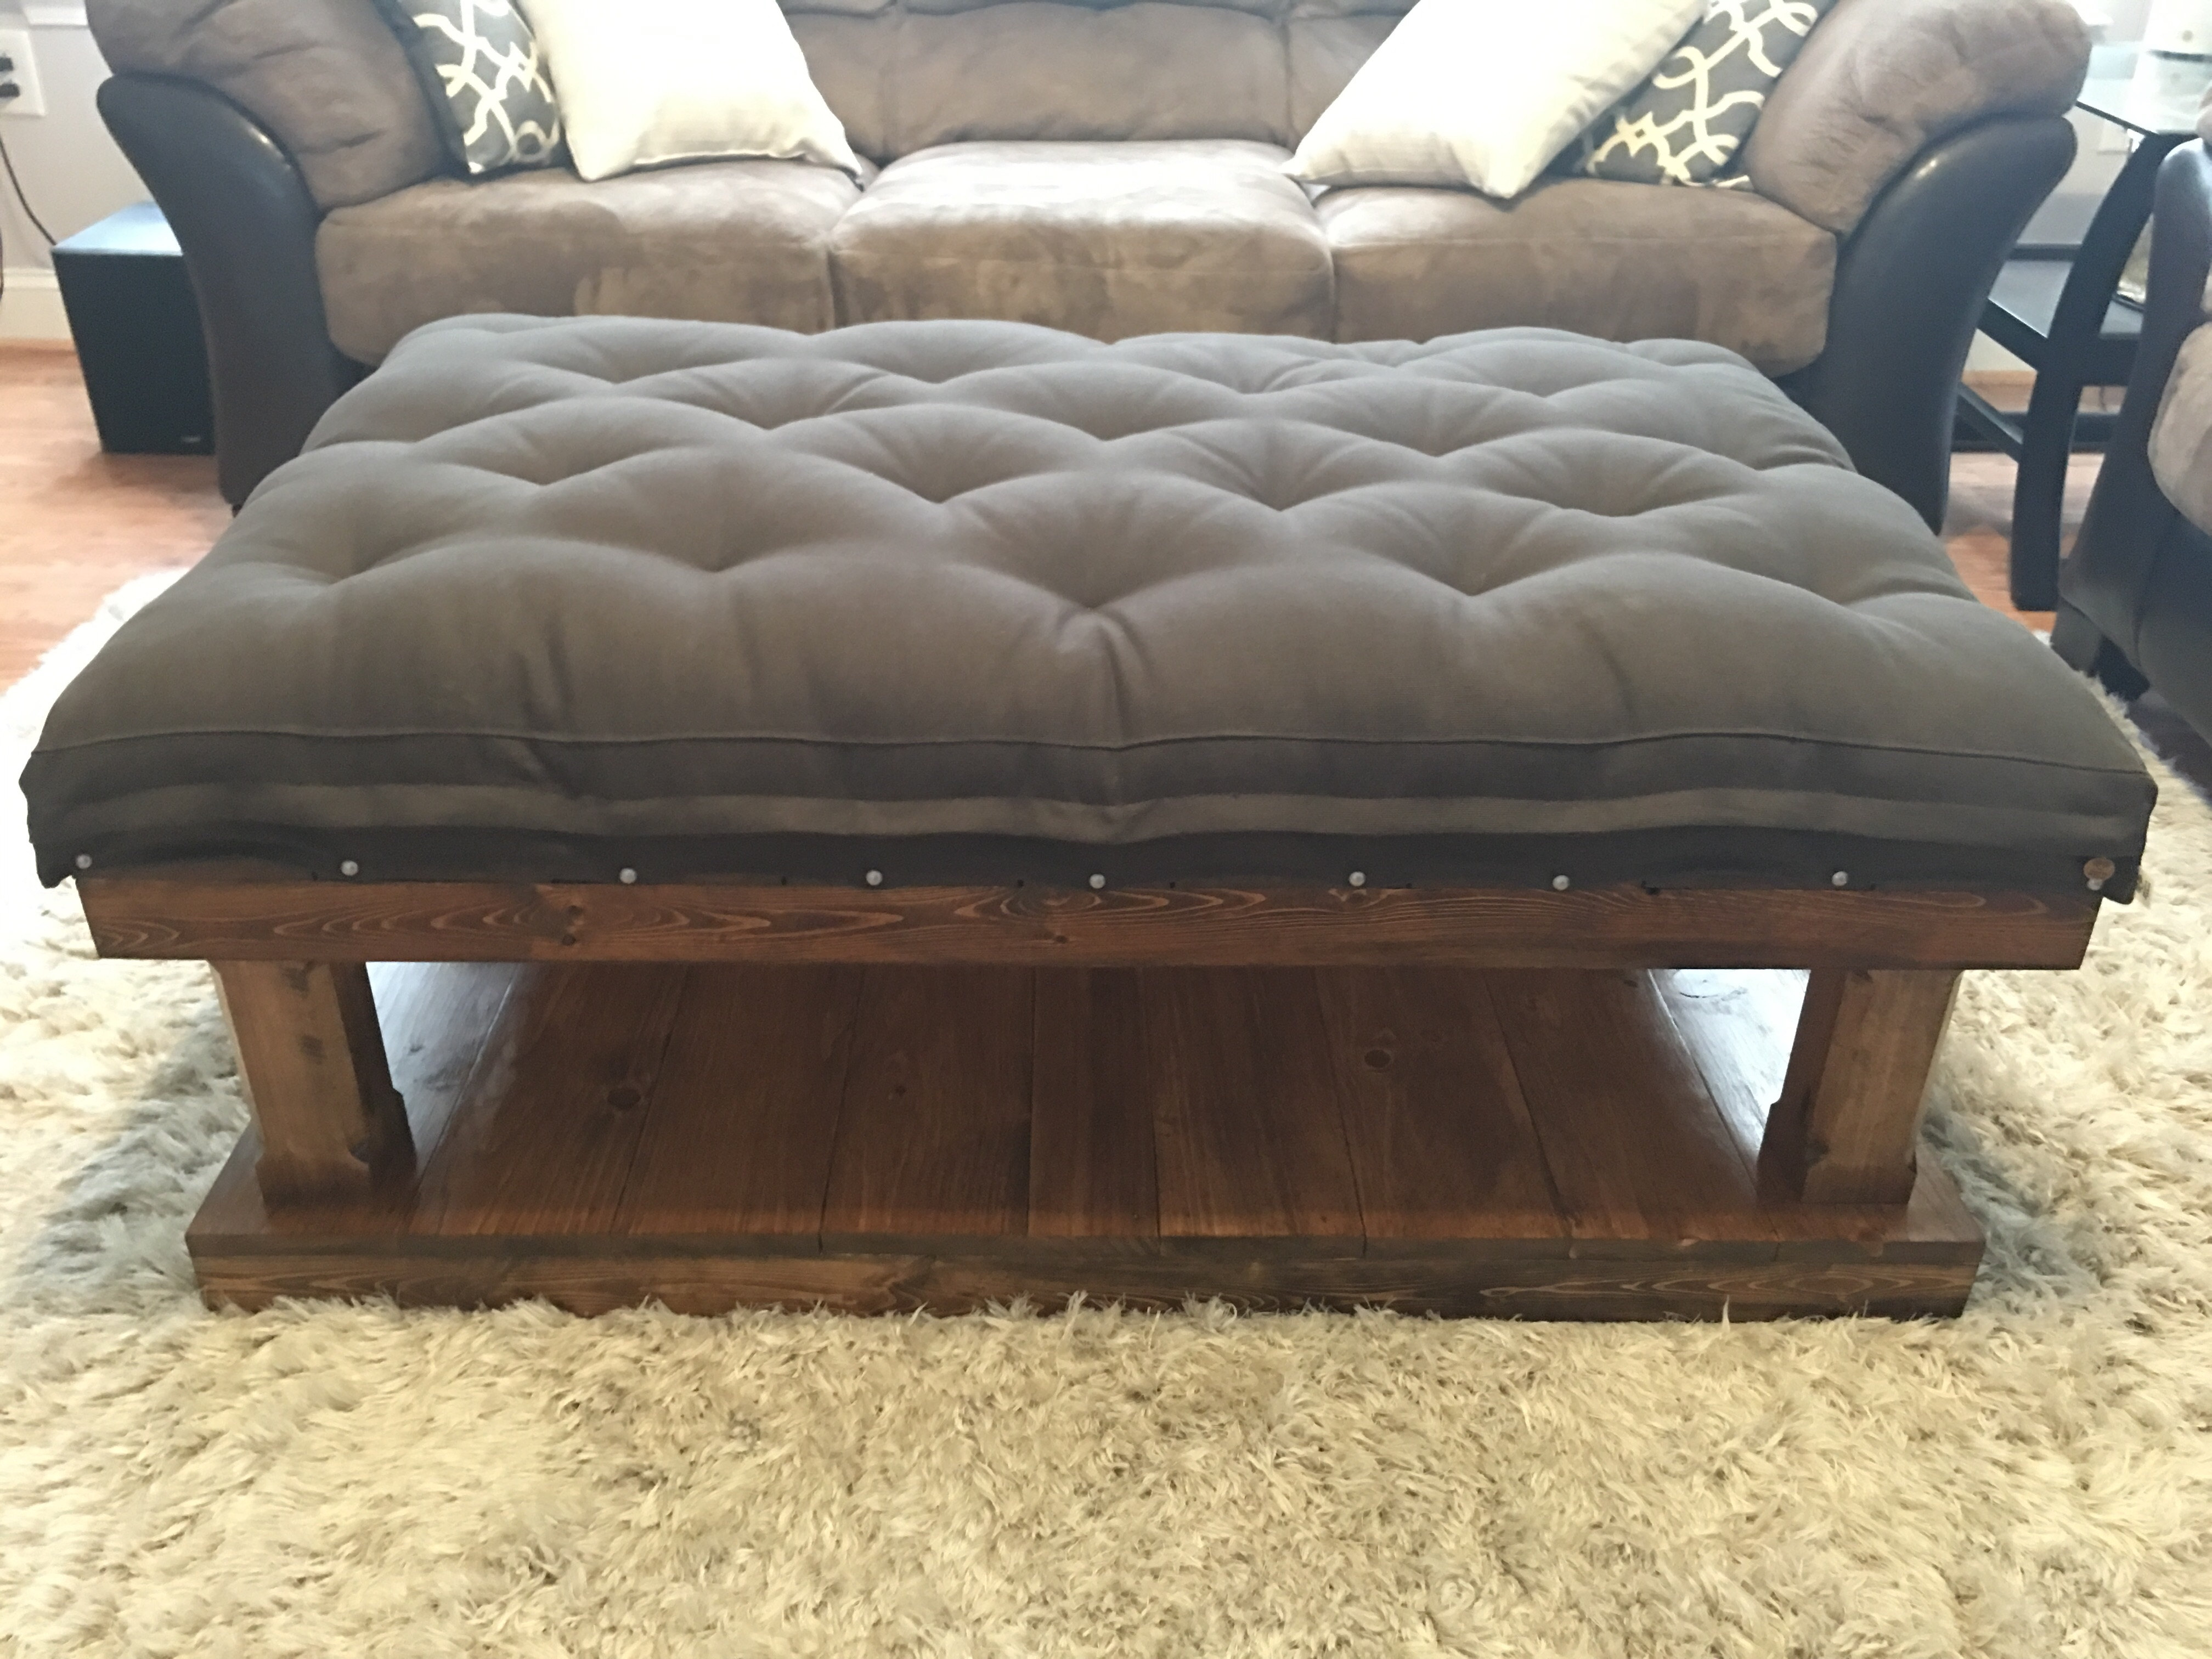 wool-filled tufted coffee table cushion